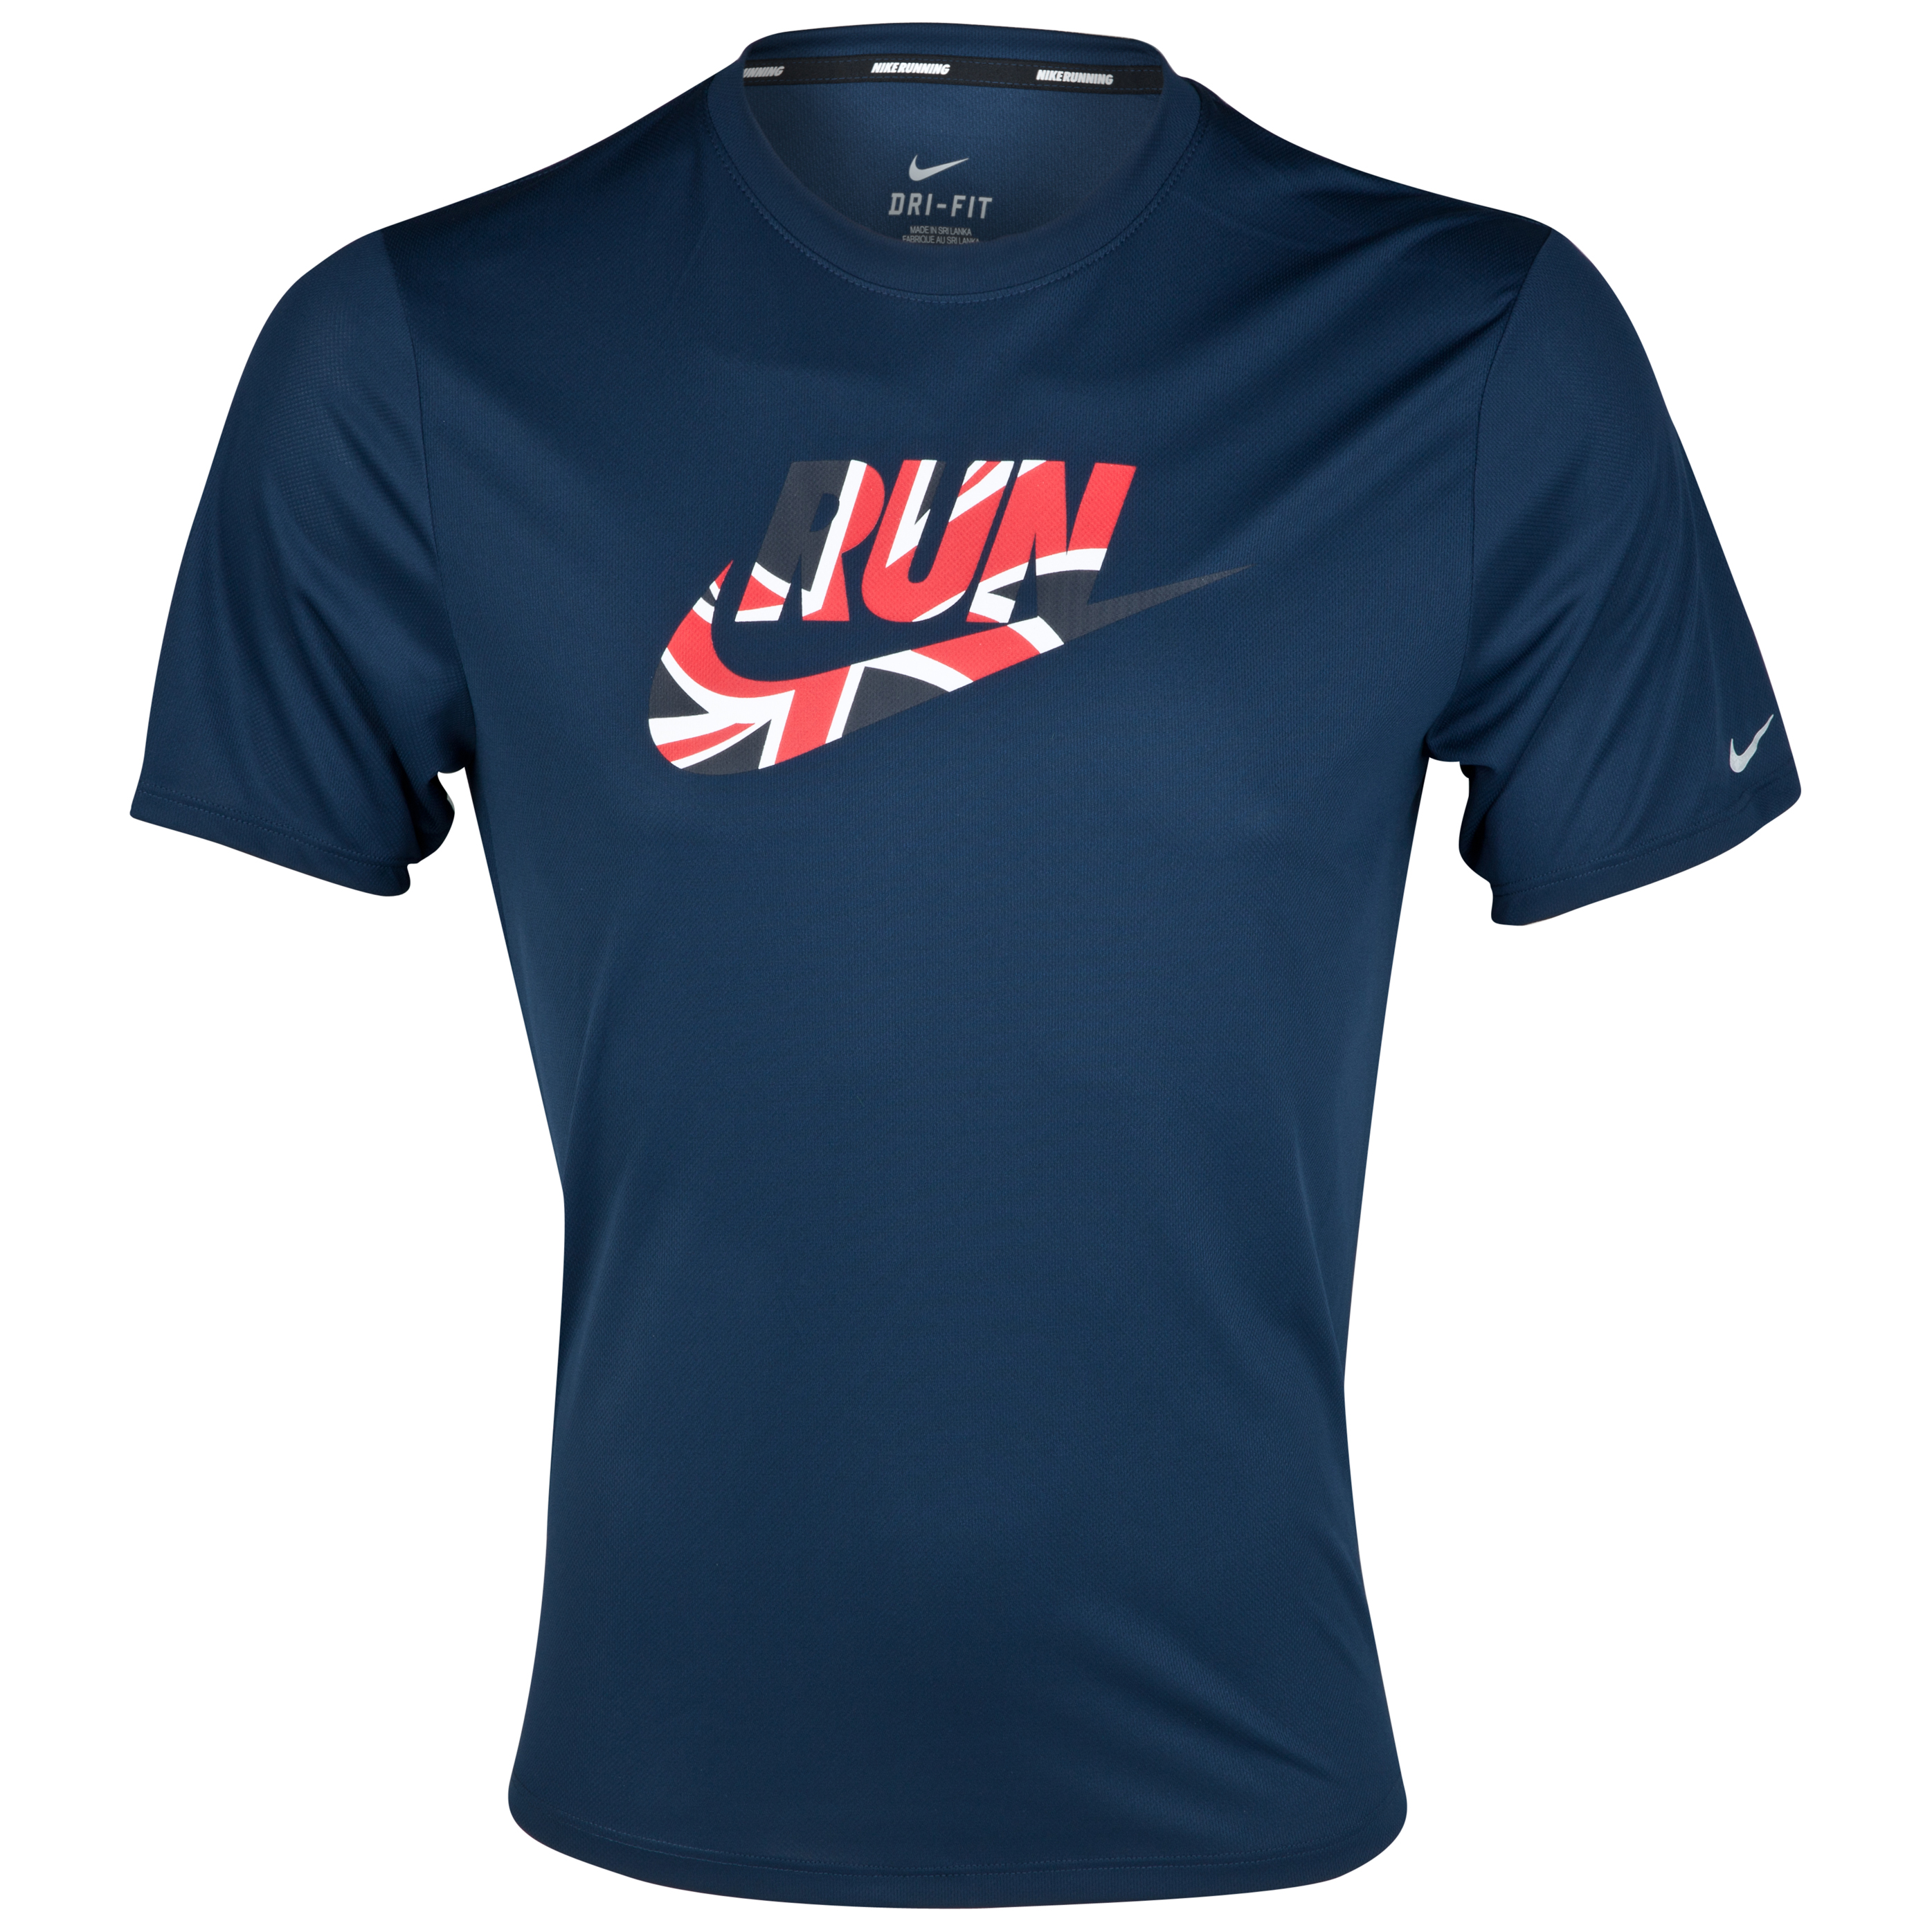 Nike Challenger Swoosh Run T-Shirt - Light Midnight/Sport Red/Reflective Silver